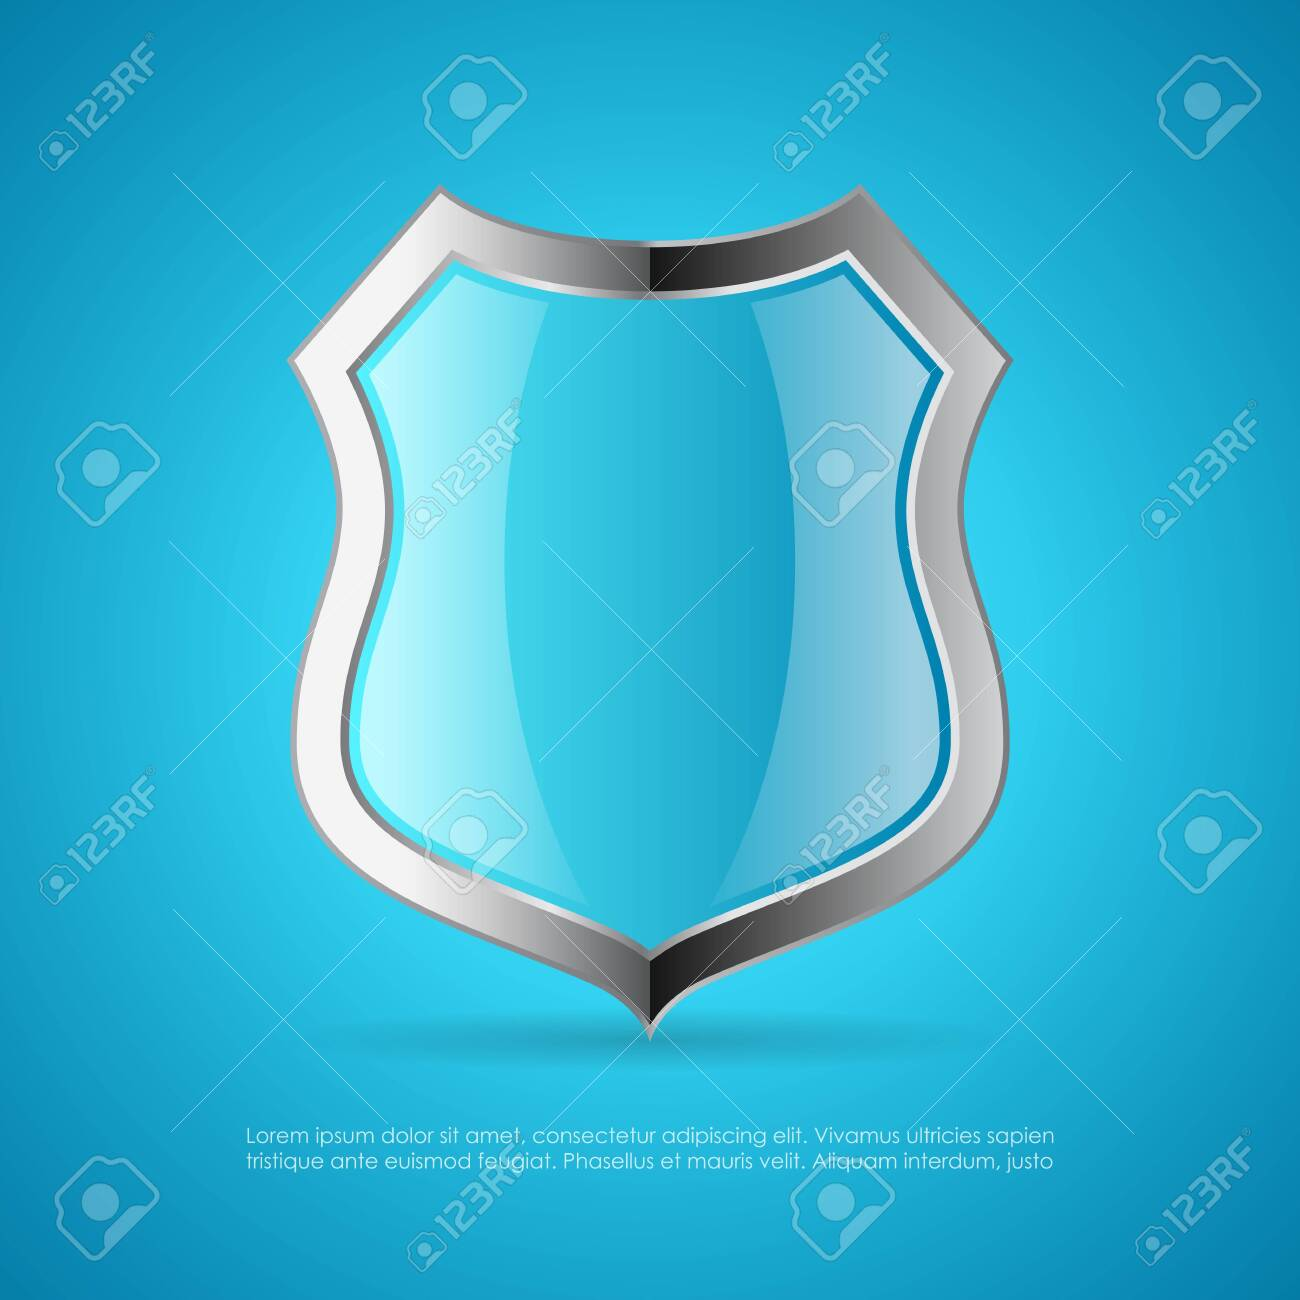 Shield vector icon on blue background - 134791974